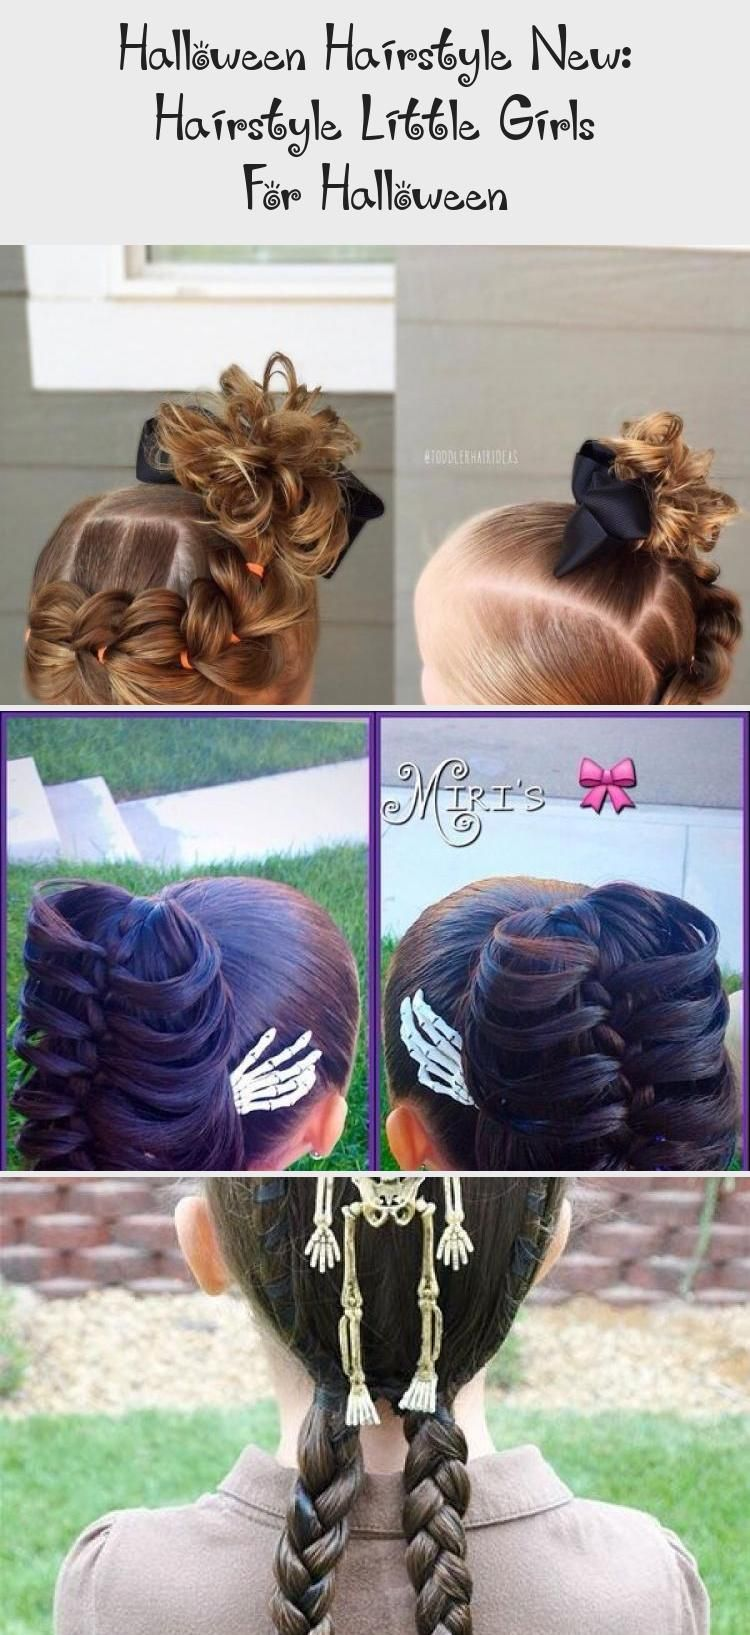 Halloween Hairstyle New Hairstyle Little Girls For Halloween 2020